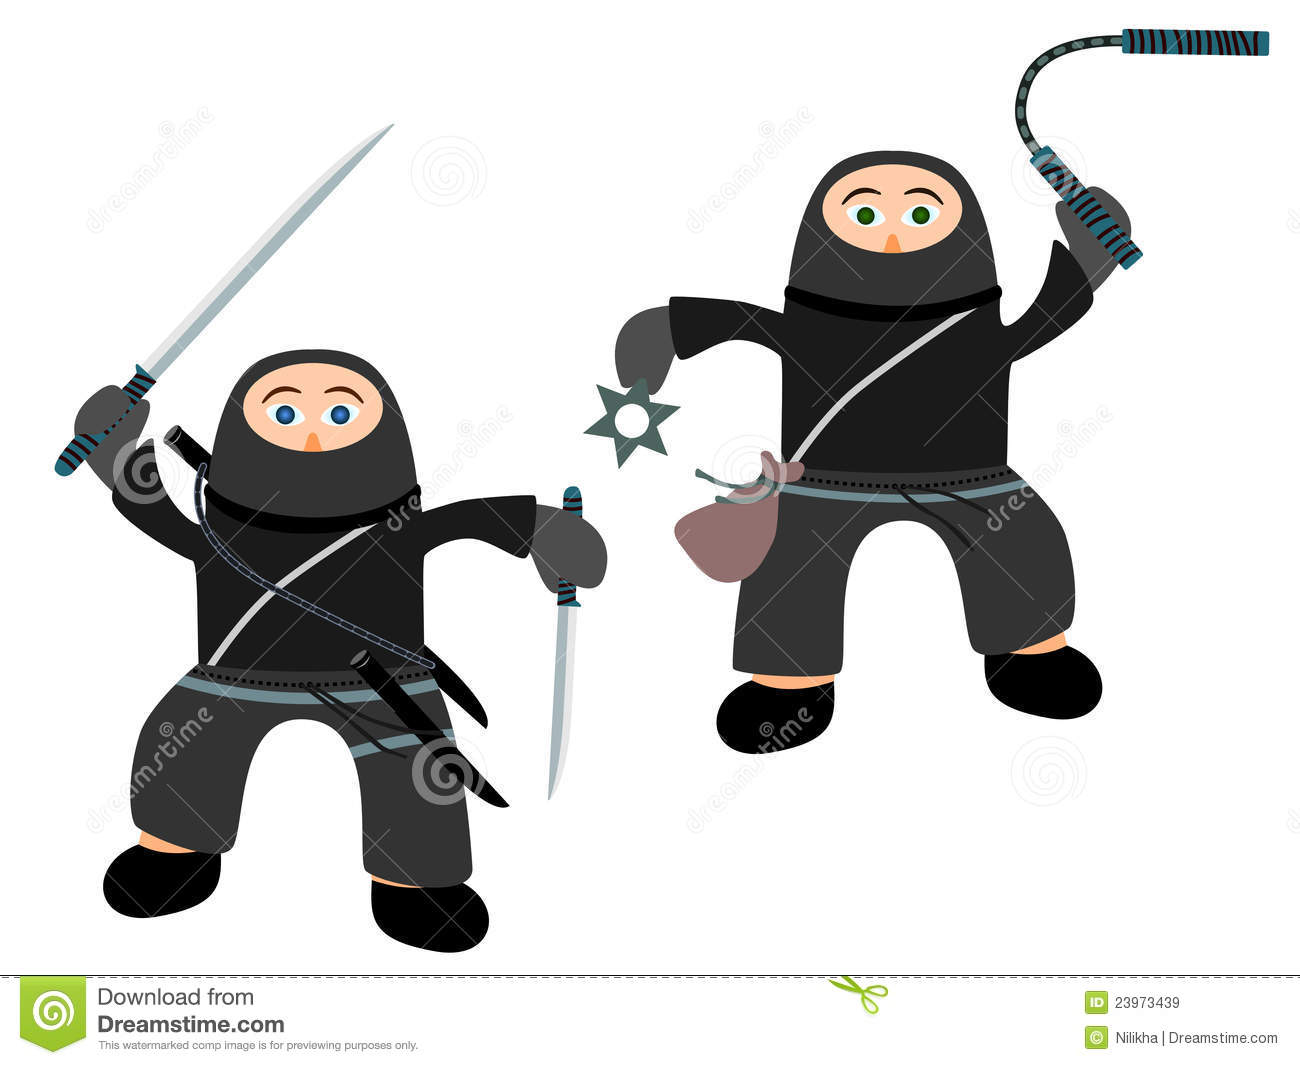 Two Cute Cartoon Ninja Fully Equipped And Ready To Battle